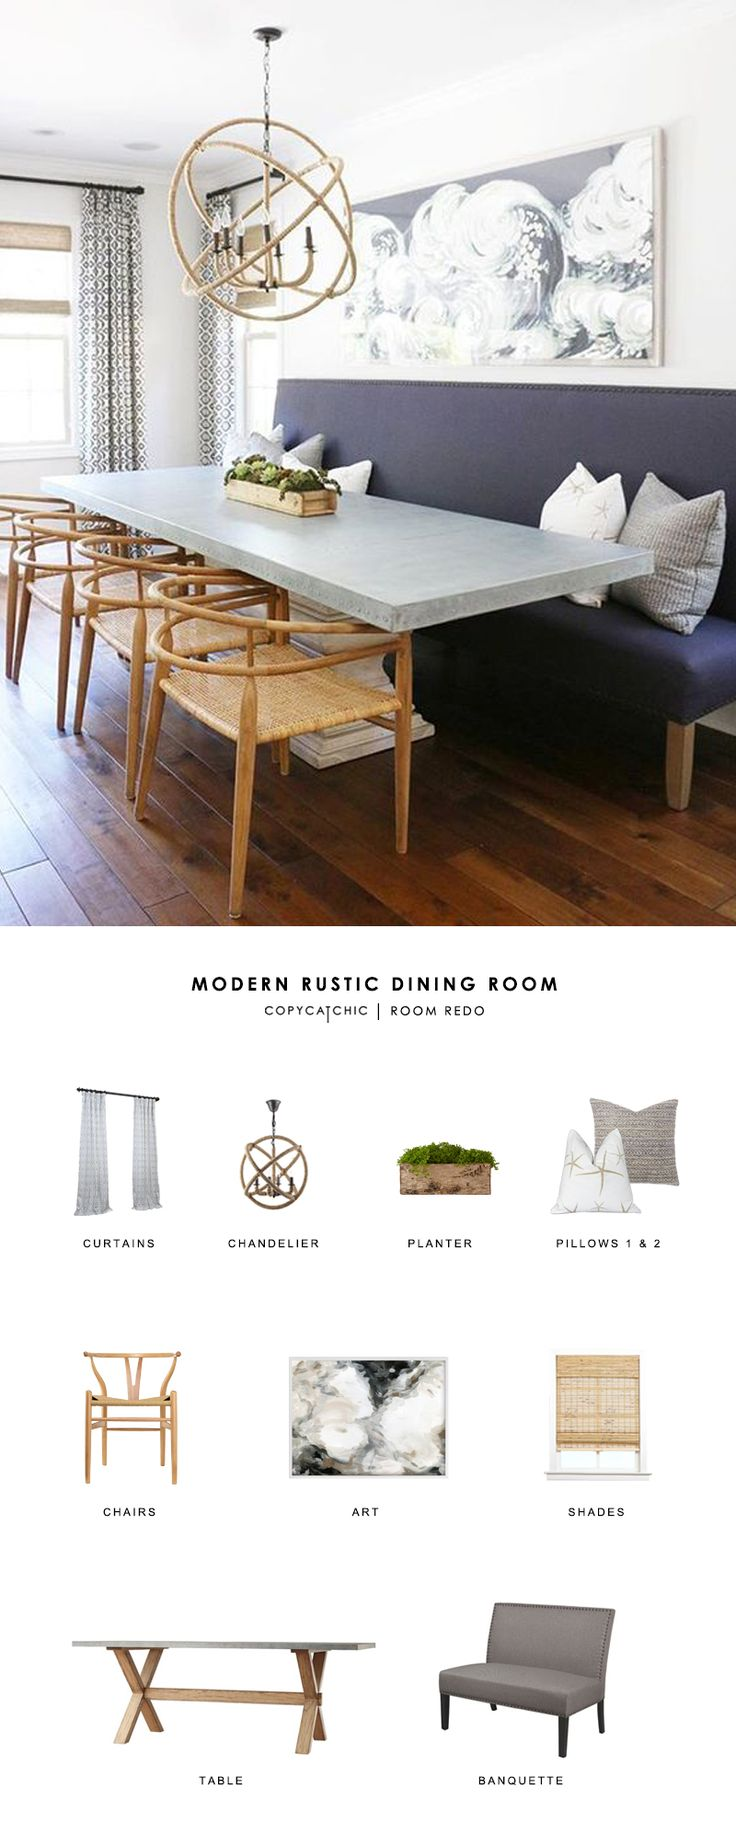 Modern country decor dining room - This Modern Country Dining Room By Blackband Design Gets Recreated For Less By Copycatchic Luxe Living